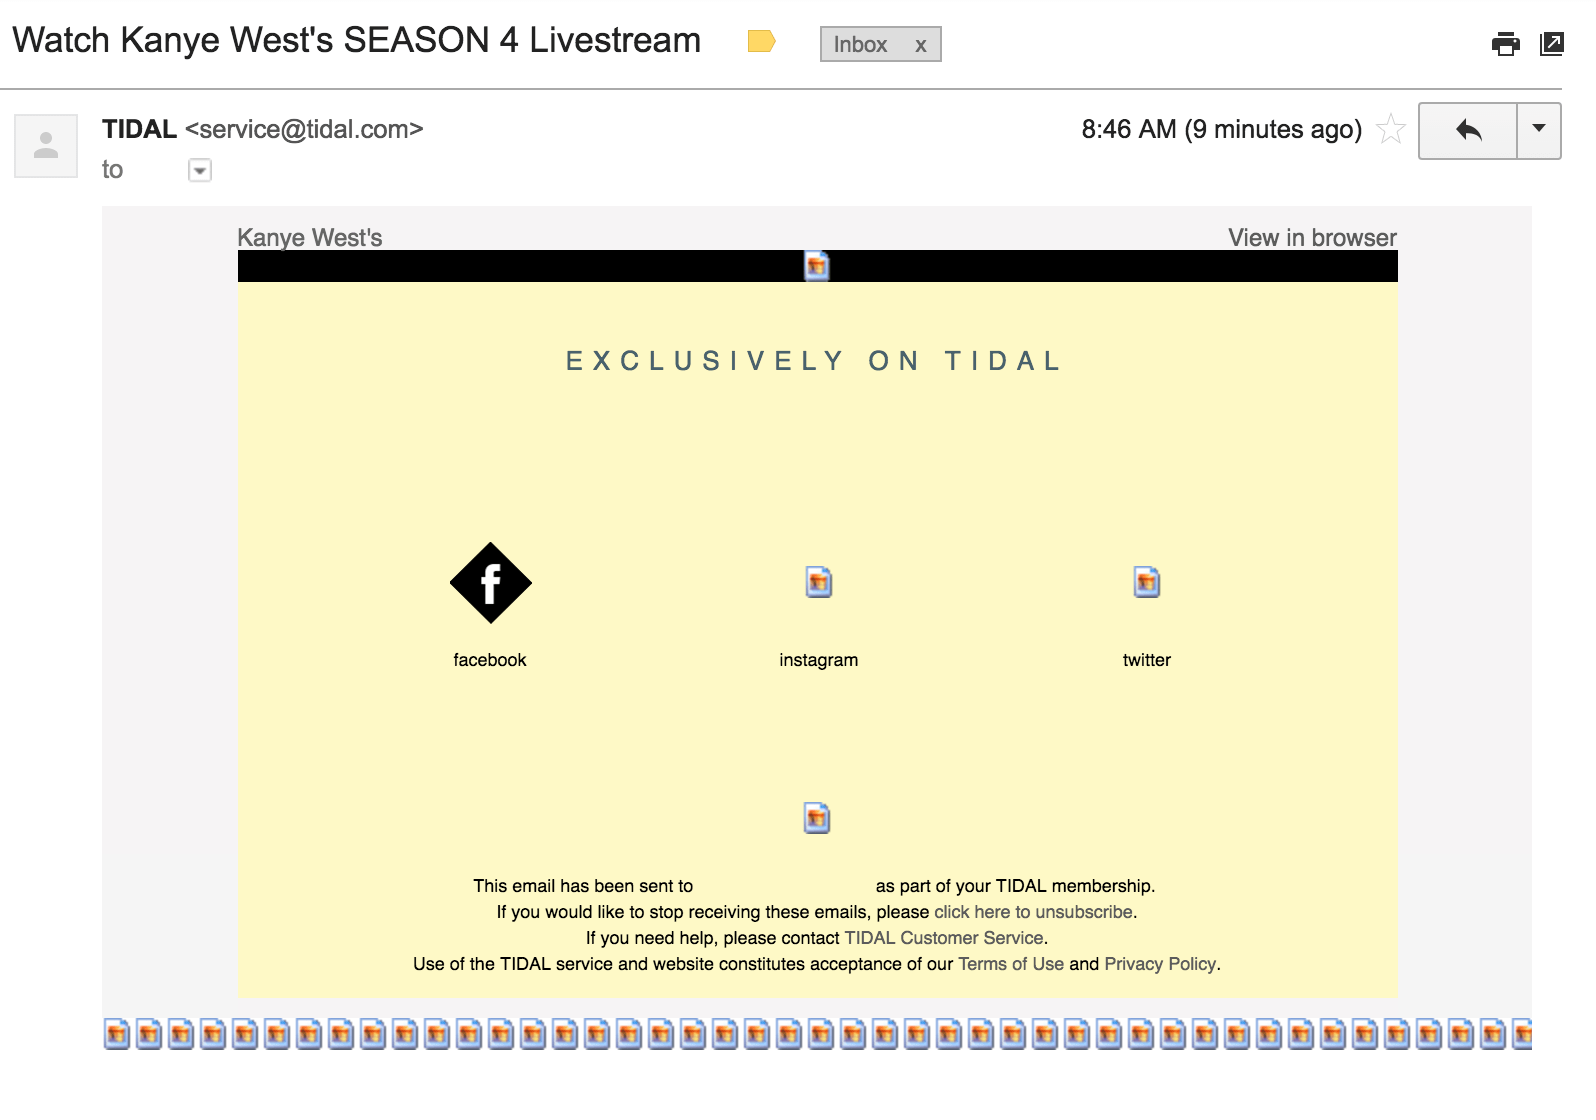 I don't think Tidal is very good at sending emails.